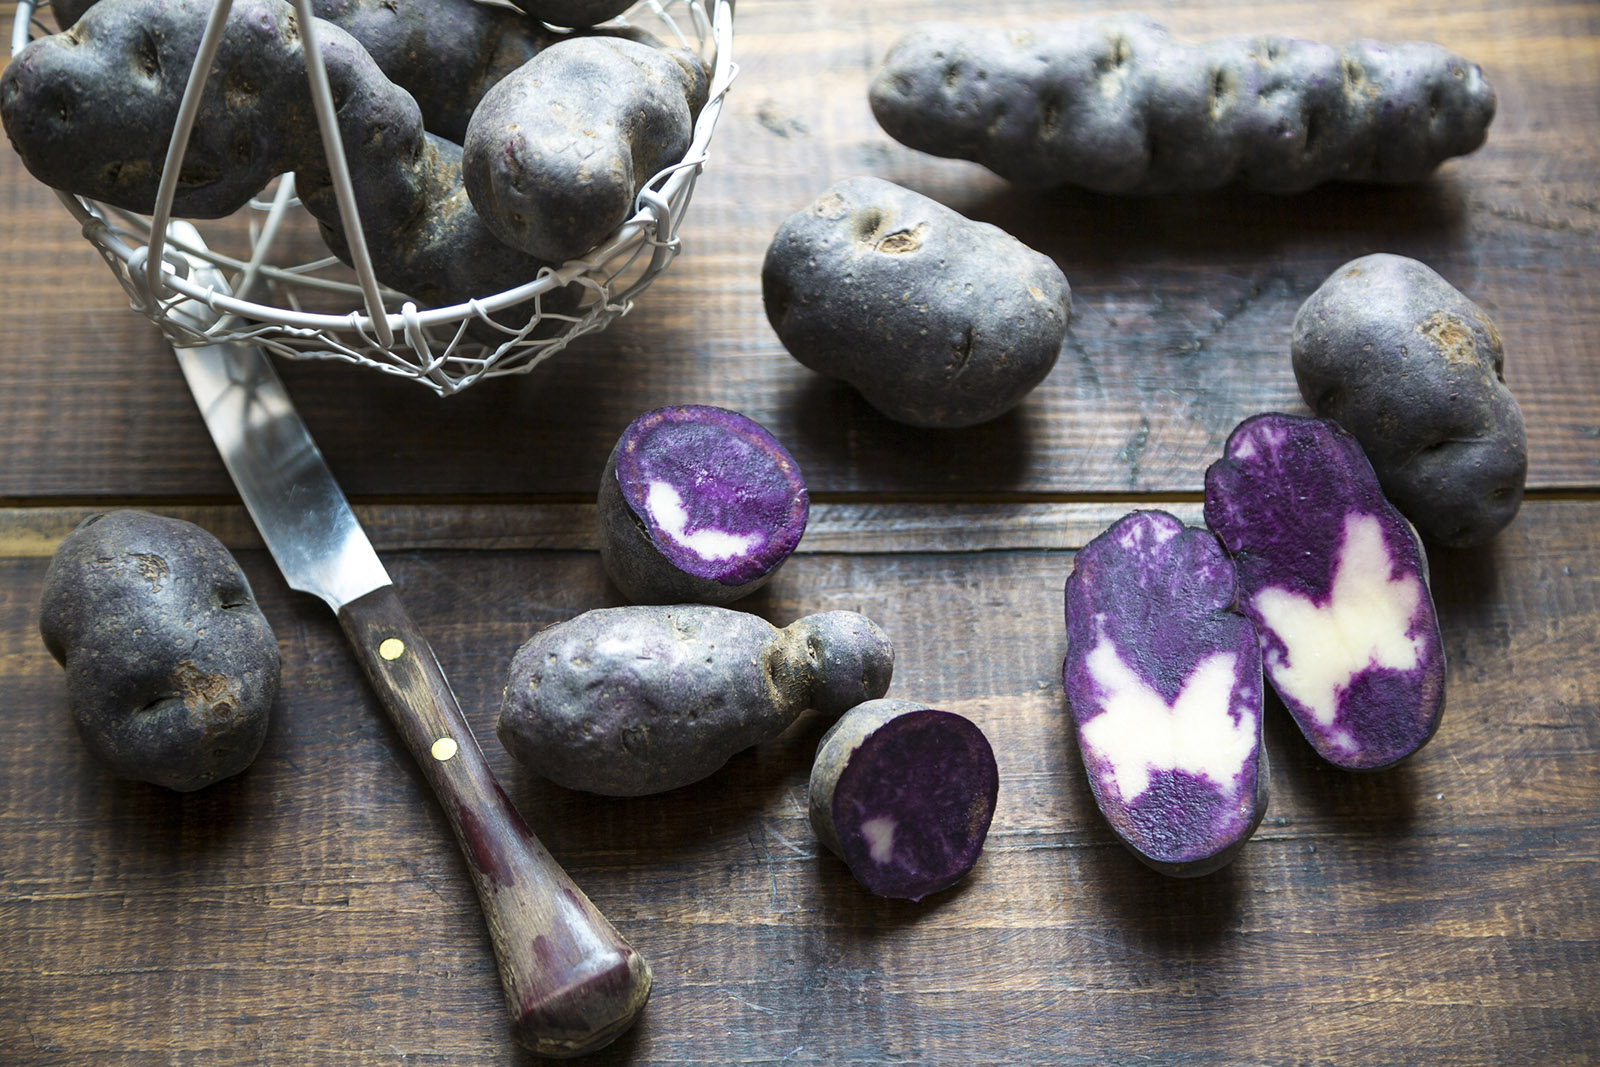 Black potato, what's different compared to the white one? An expert answers